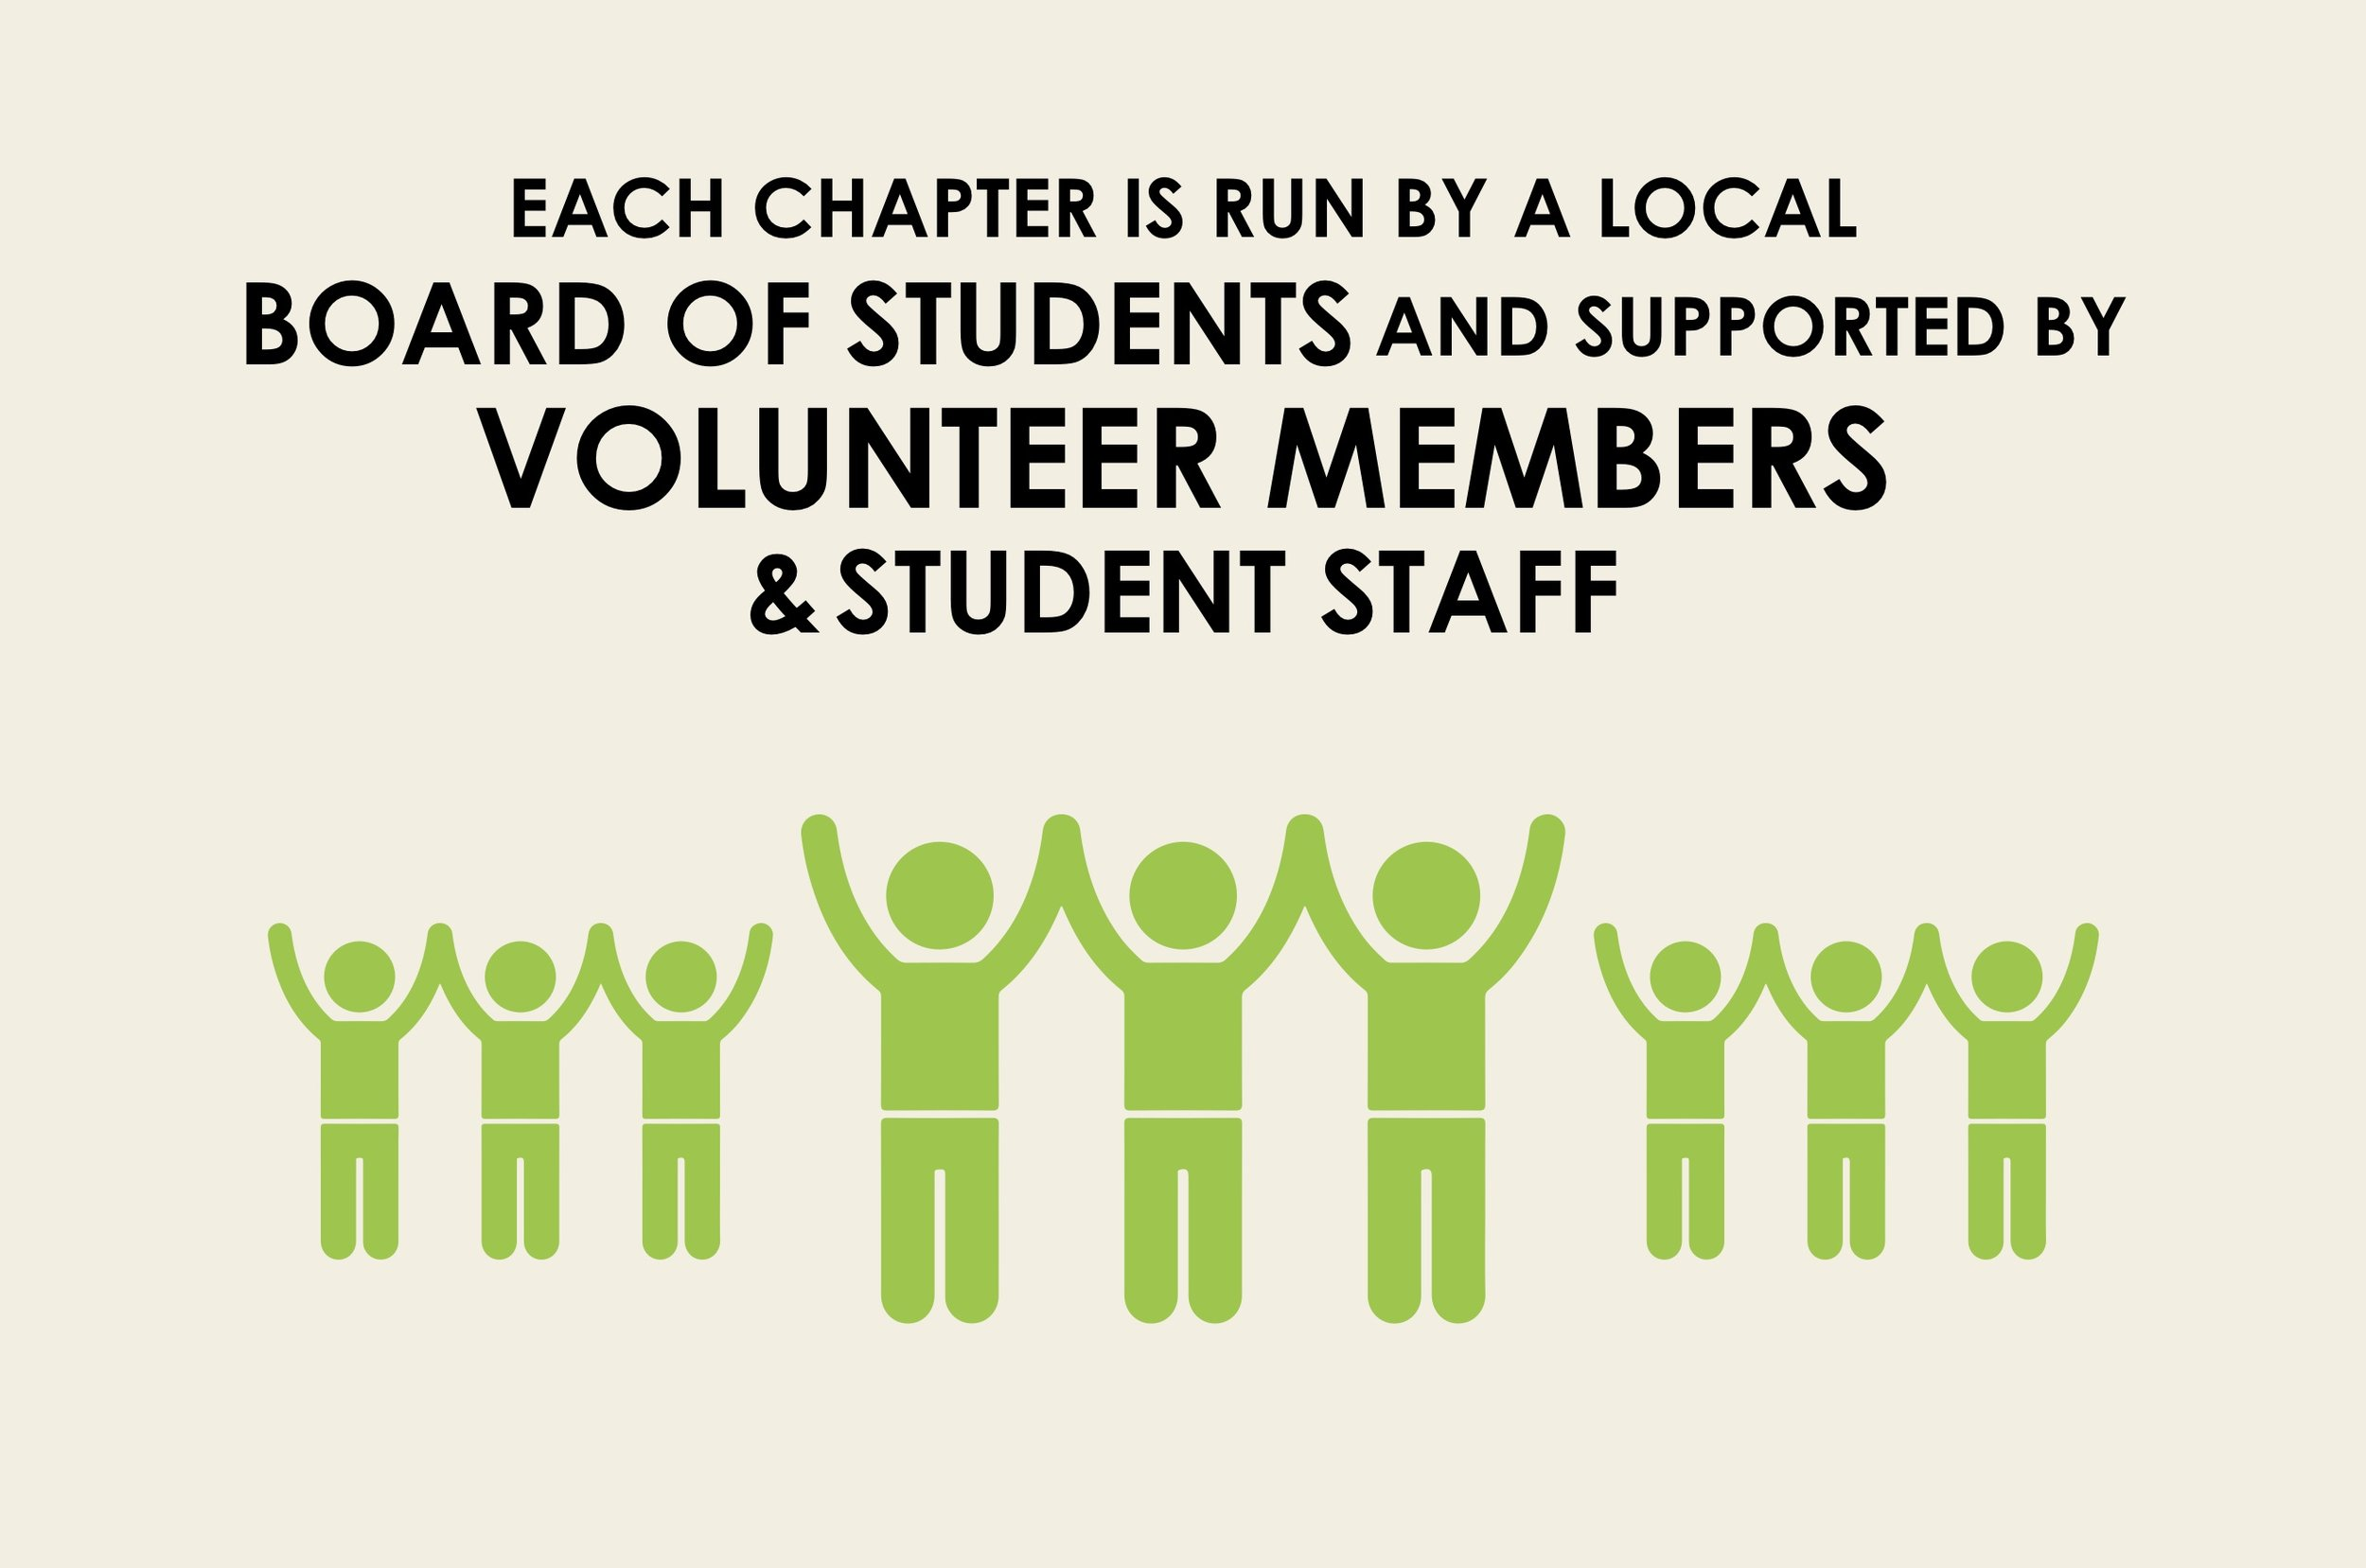 Each chapter is run by a local board of students and supported by volunteer members and staff.